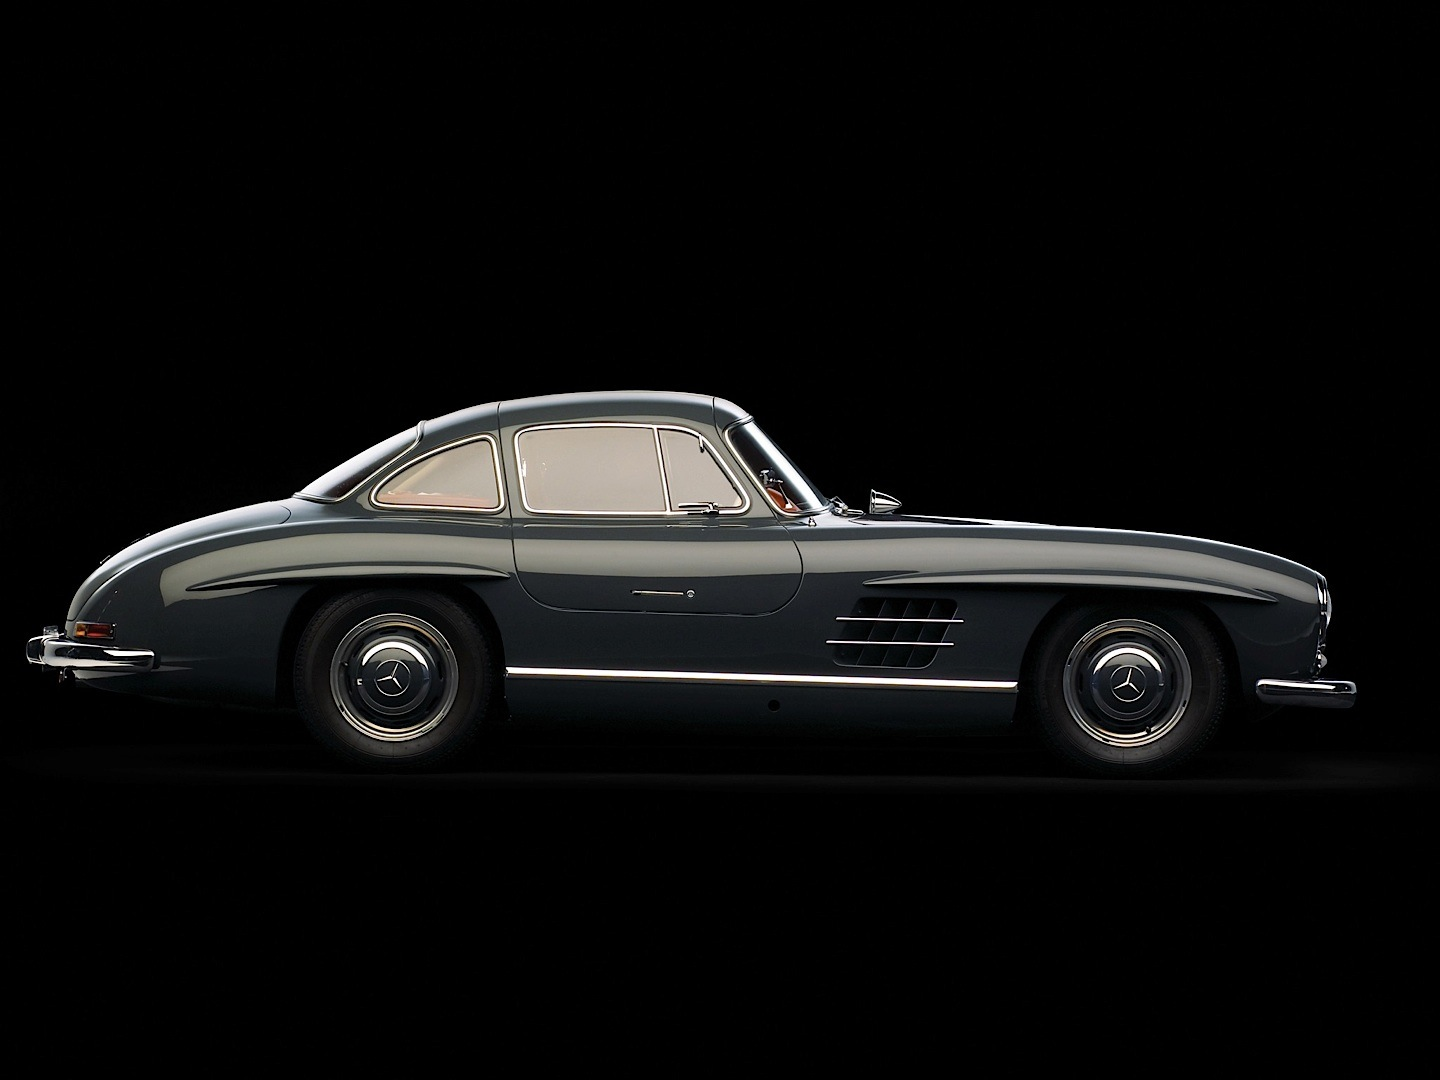 Mercedes benz 300 sl in top 5 dream cars by ams for Mercedes benz 300 sl